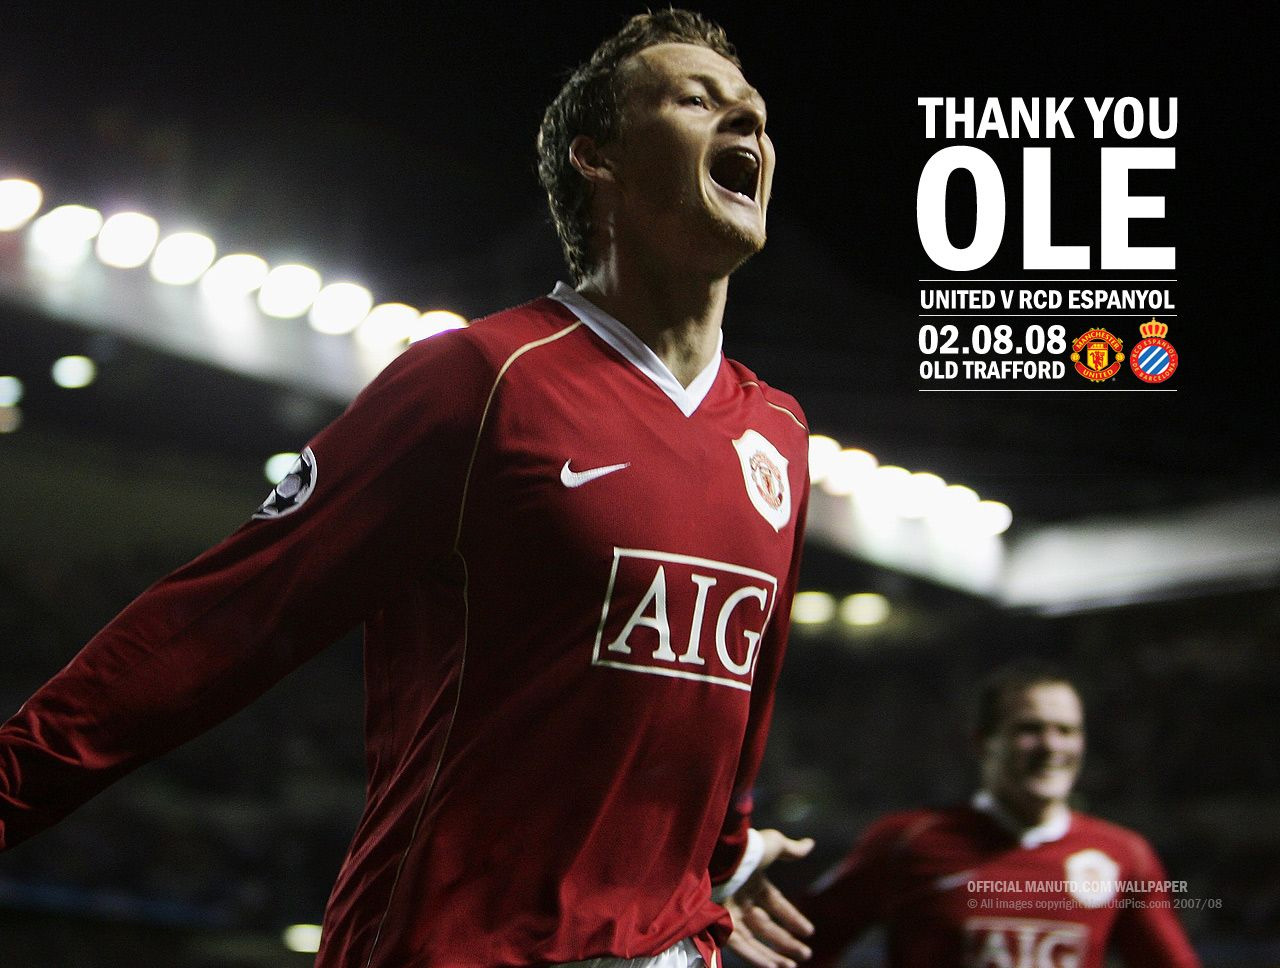 Thank You OLE